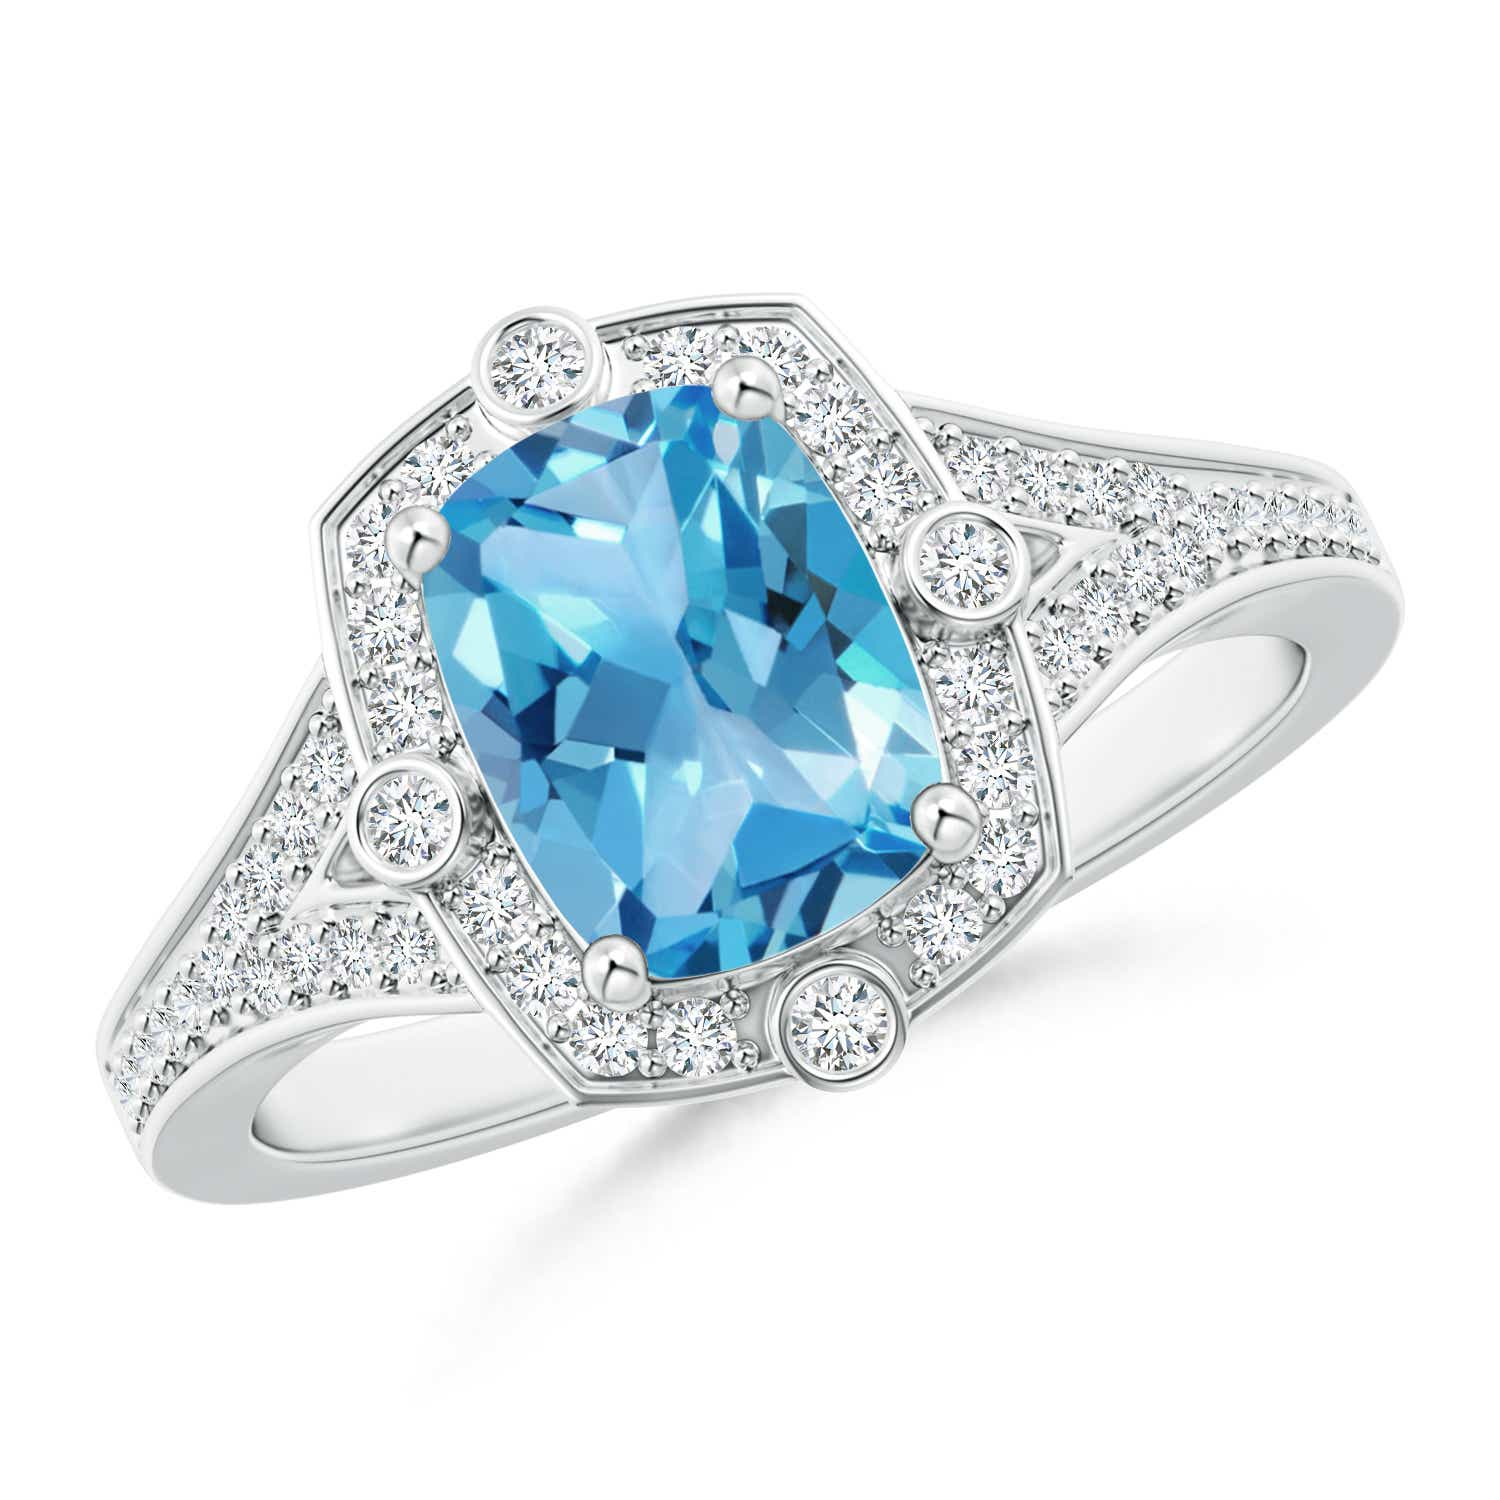 Angara Diamond Halo Cushion Swiss Blue Topaz Ring in Yellow Gold 7FAk5esPks